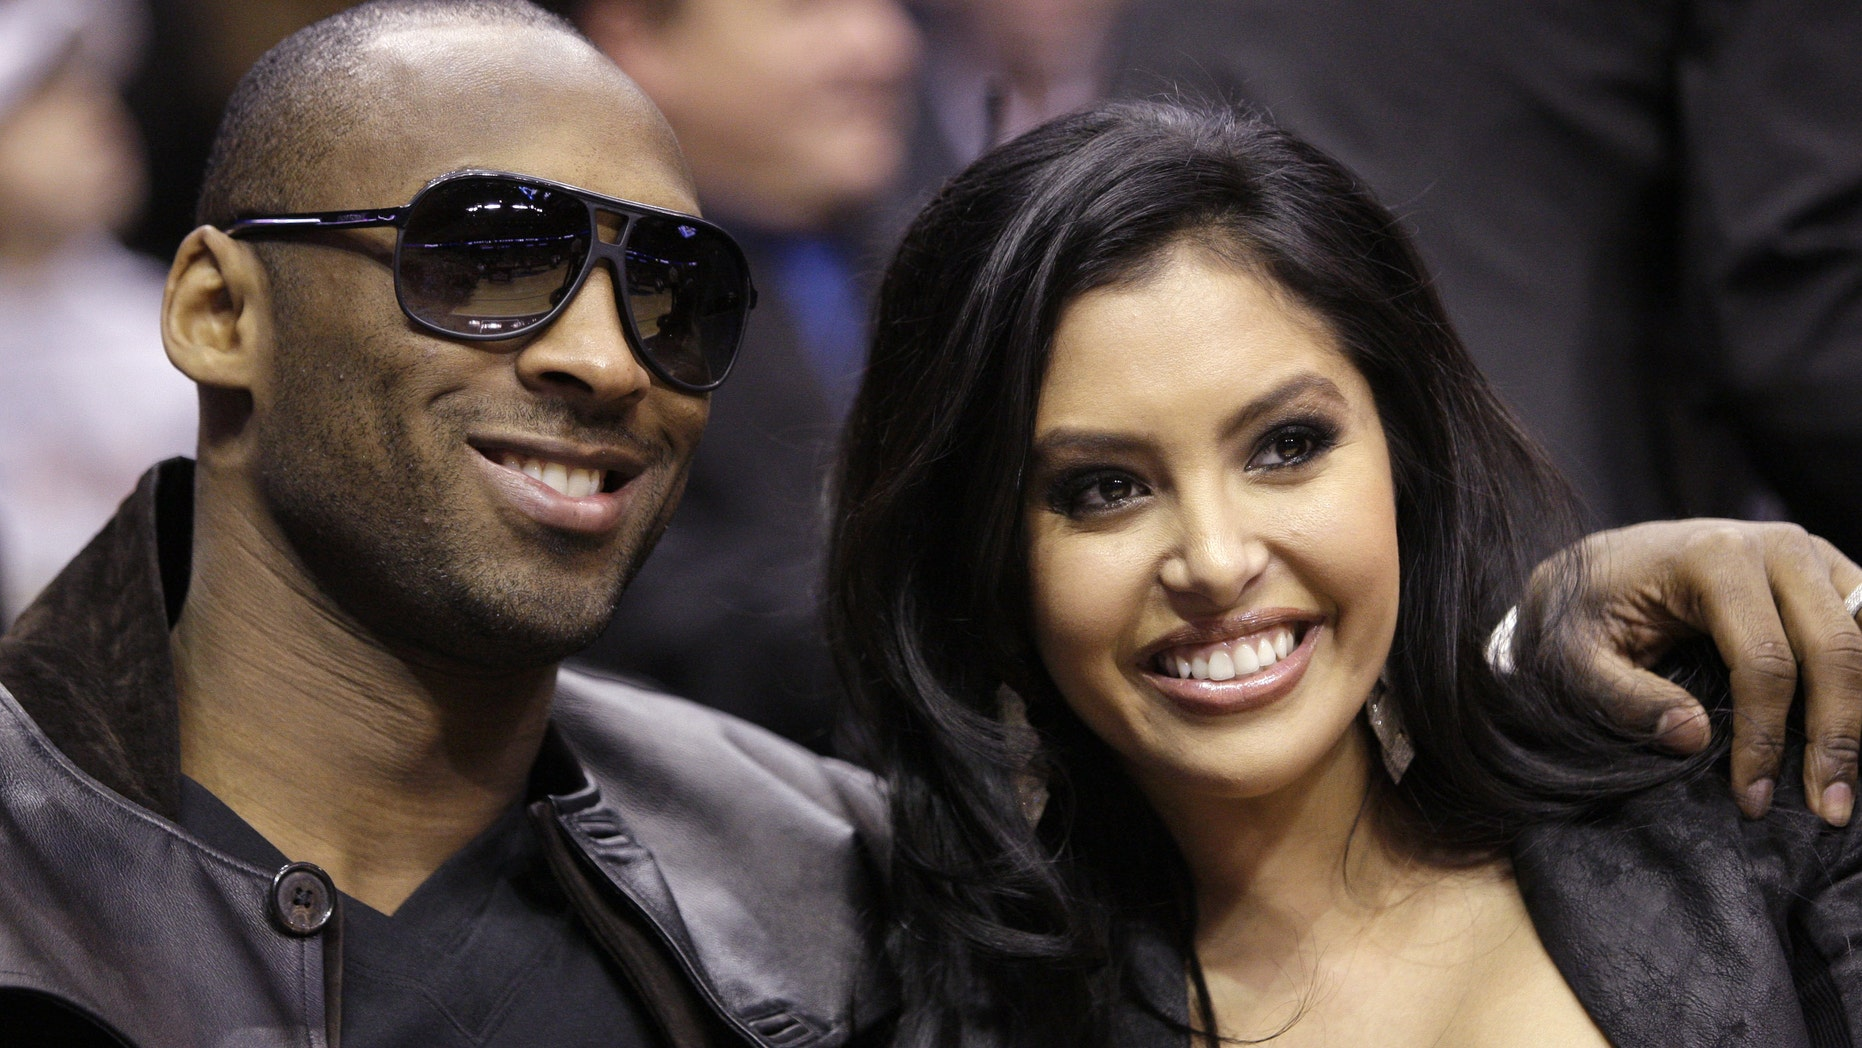 File-This Feb. 13, 2010 file photo shows Los Angeles Lakers' Kobe Bryant and his wife, Vanessa, attending the skills competition at the NBA basketball All-Star Saturday Night in Dallas.  The Los Angeles Lakers superstar and his wife both announced they've called off their divorce Friday Jan. 11, 2013, on social media. Shortly after Vanessa posted the news on Instagram, Kobe confirmed it on Facebook less than an hour before the Lakers hosted the Oklahoma City Thunder. (AP Photo/LM Otero, File)